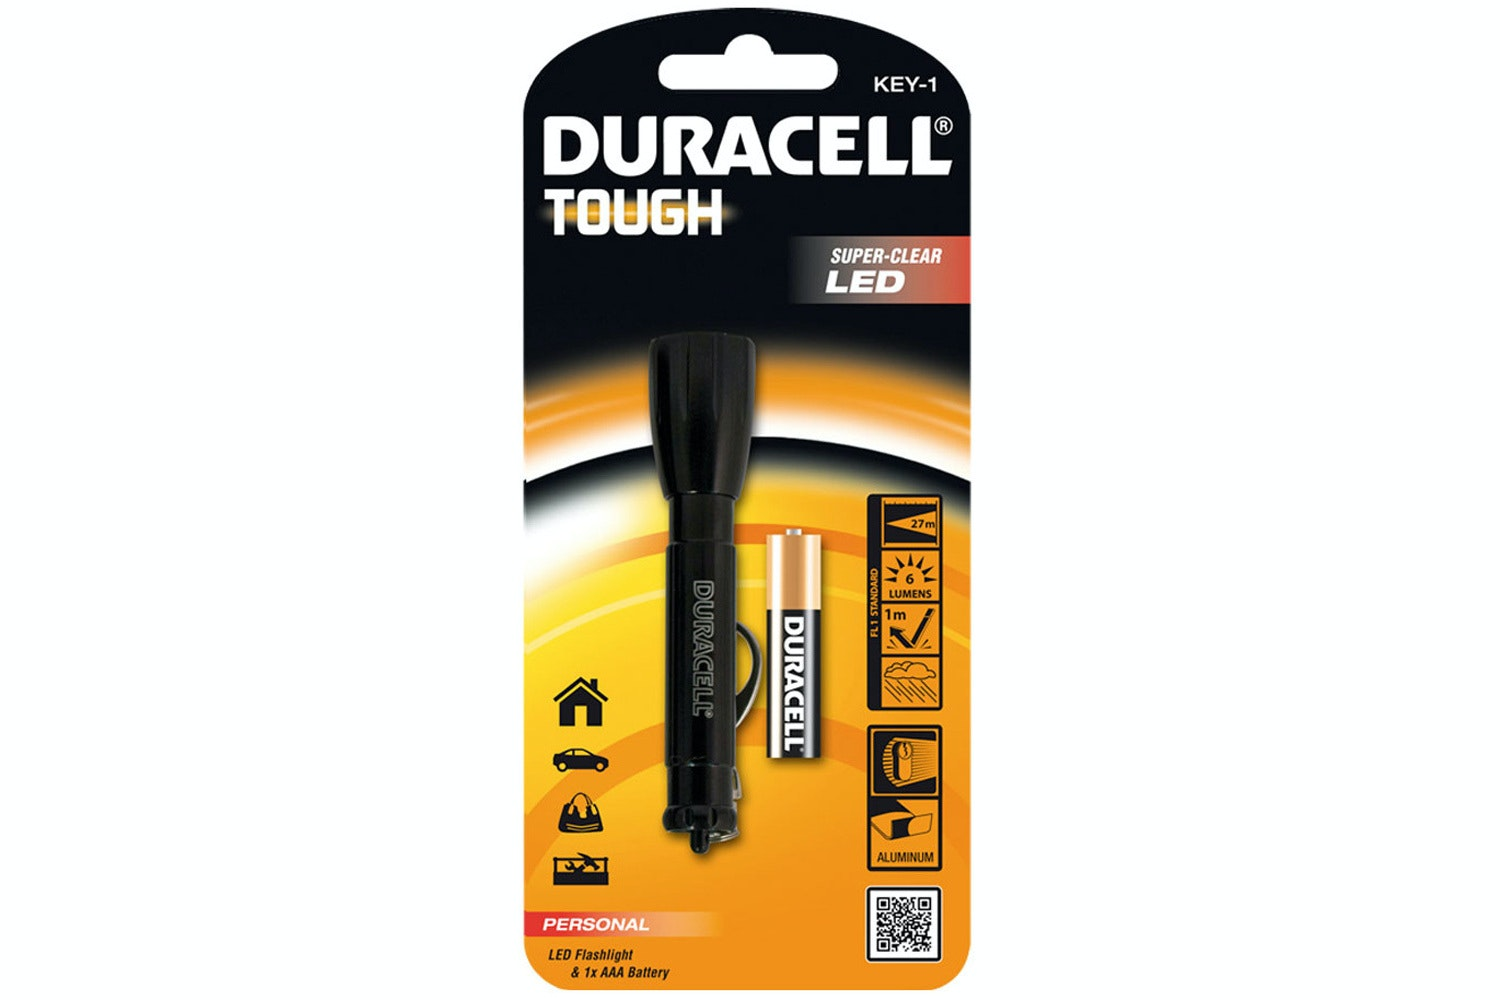 Duracell Torch Key